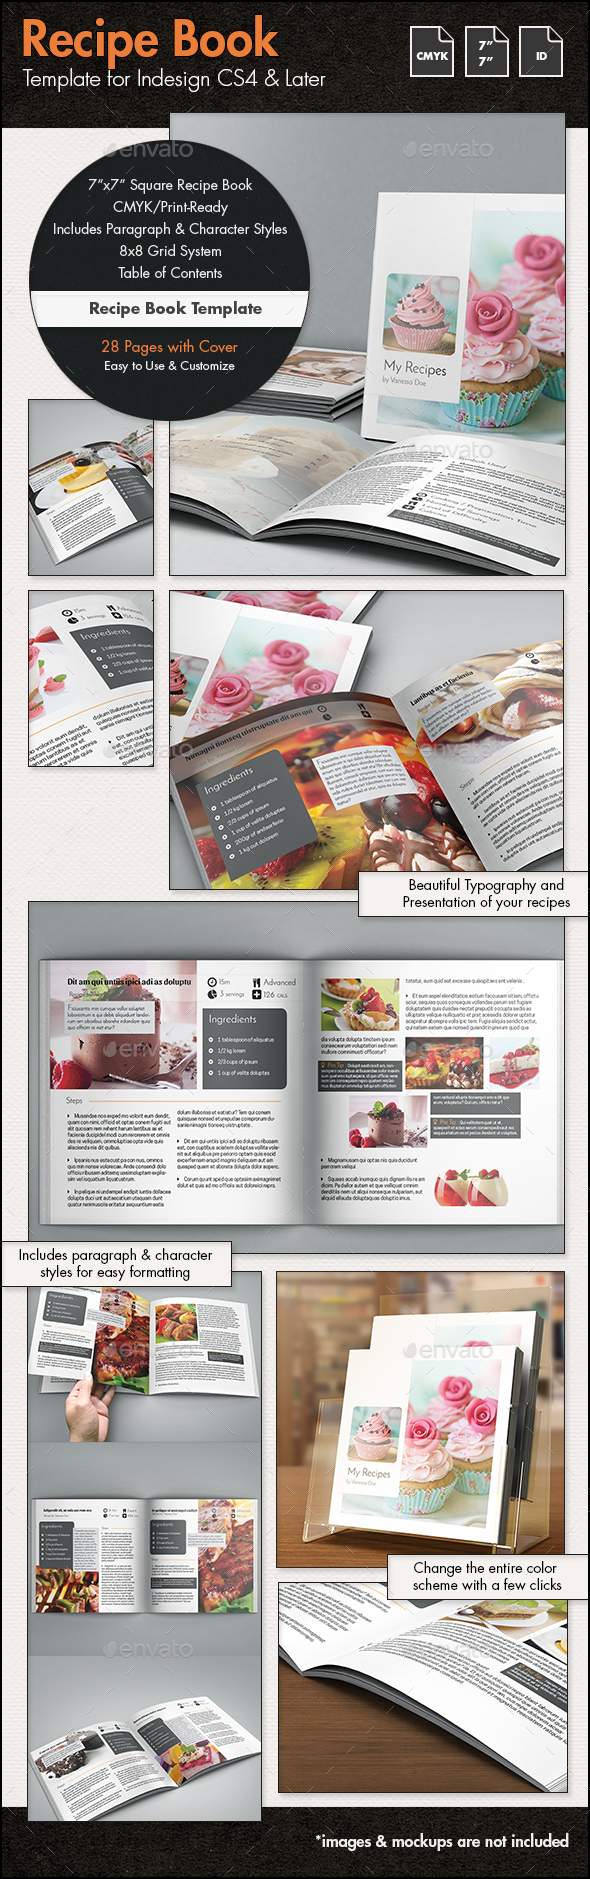 Recipe book template 7x7in by sthalassinos graphicriver for Indesign templates for books